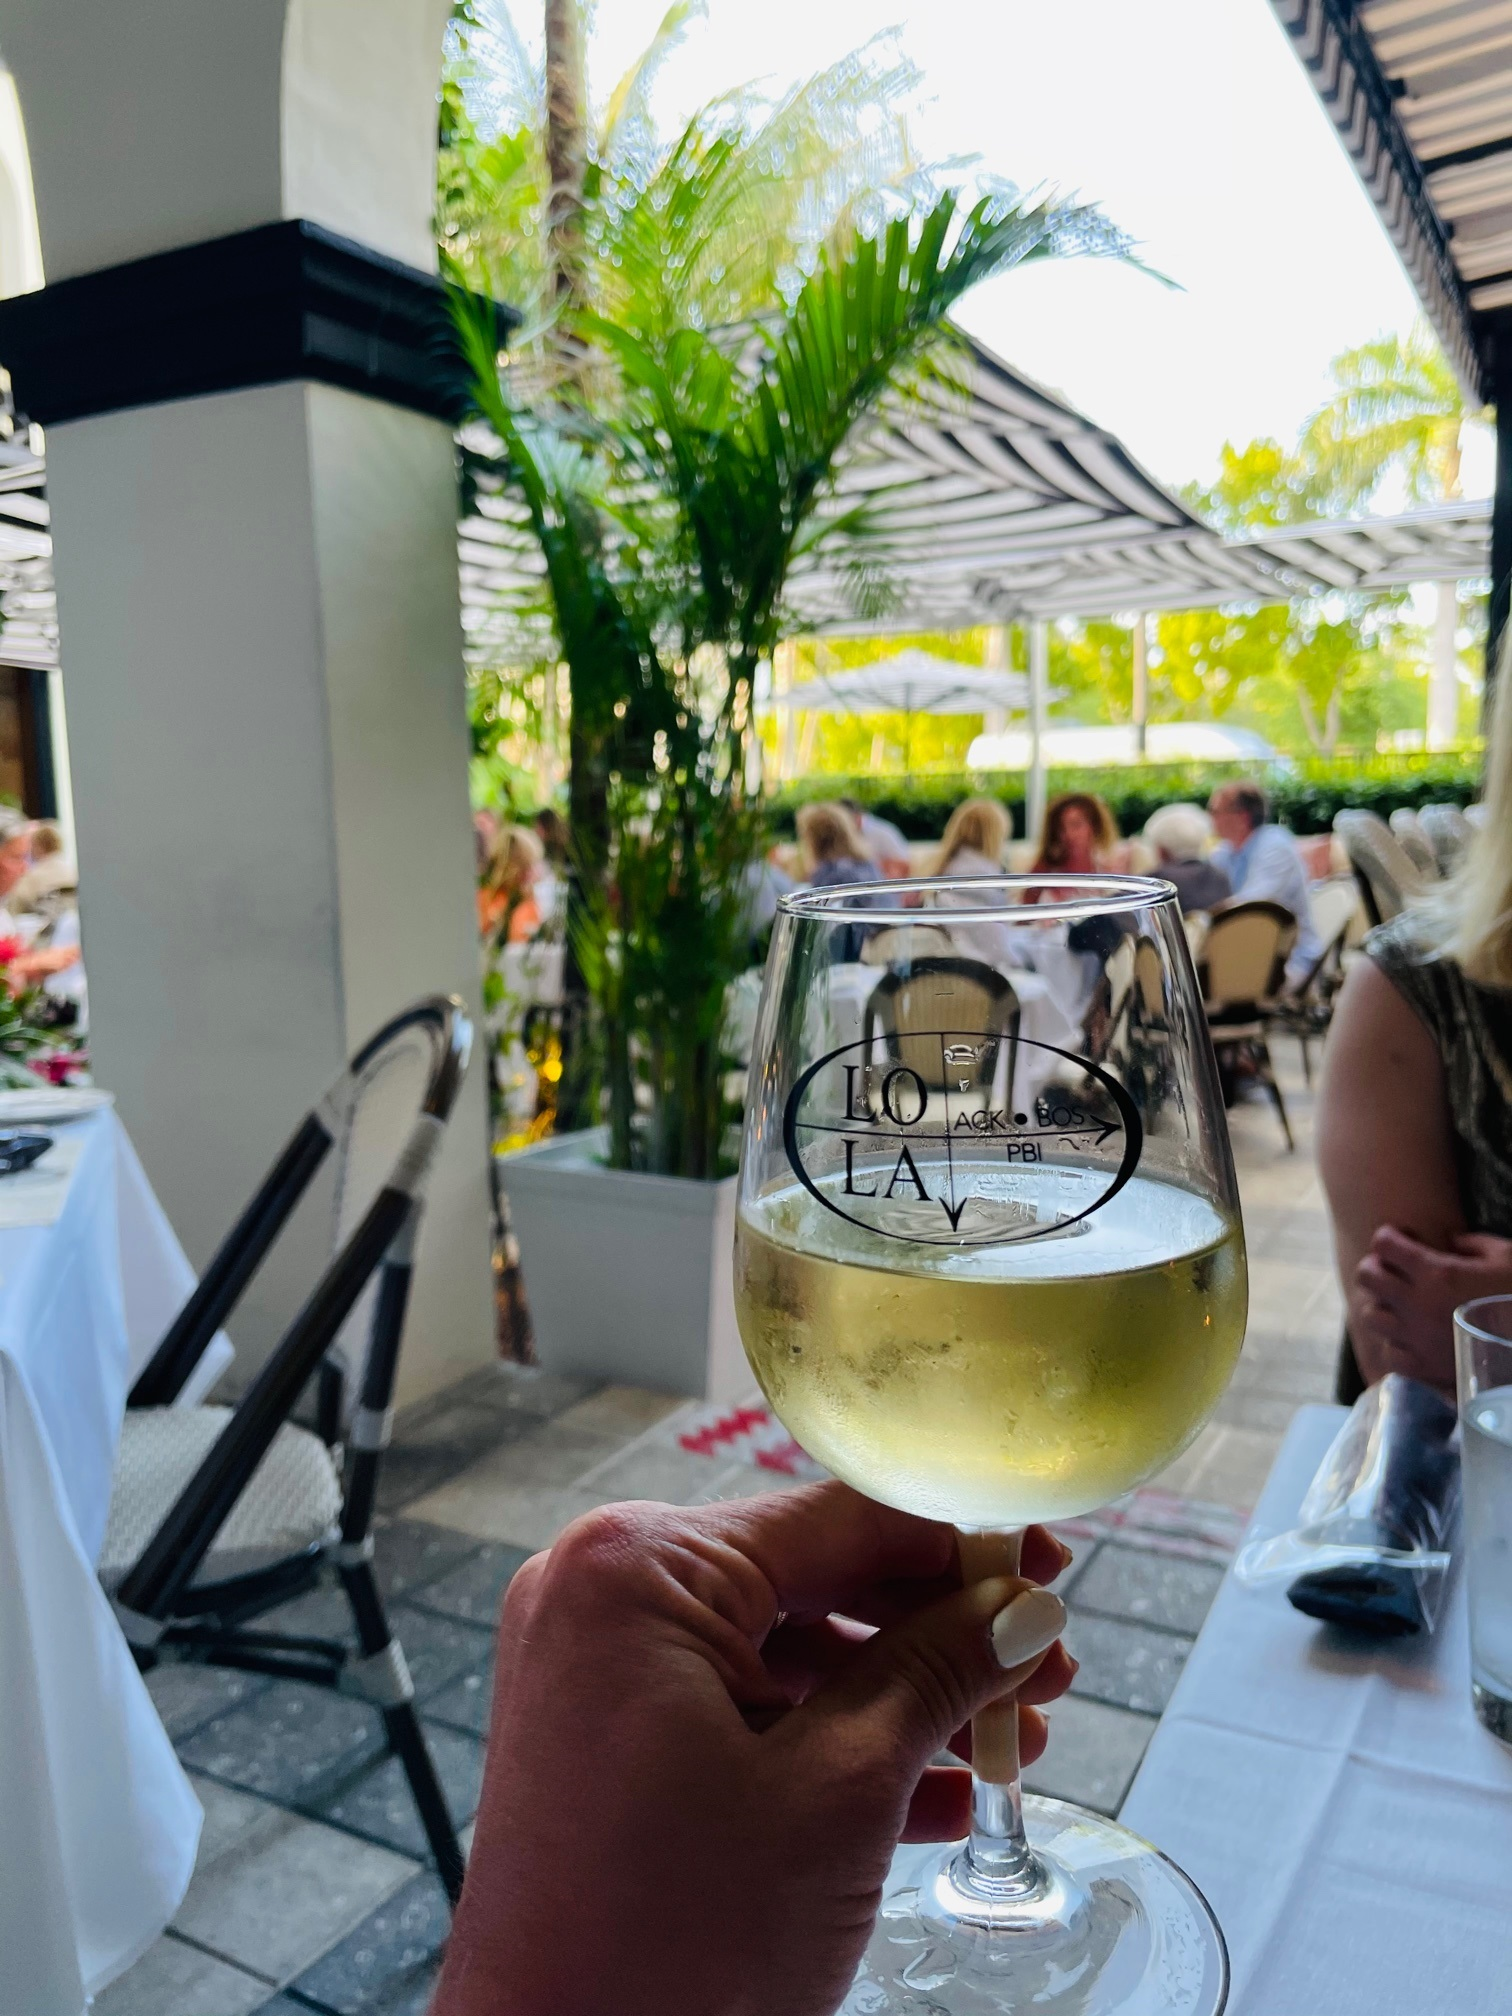 wining and dining in Palm Beach, Florida, Lola 41 restaurant